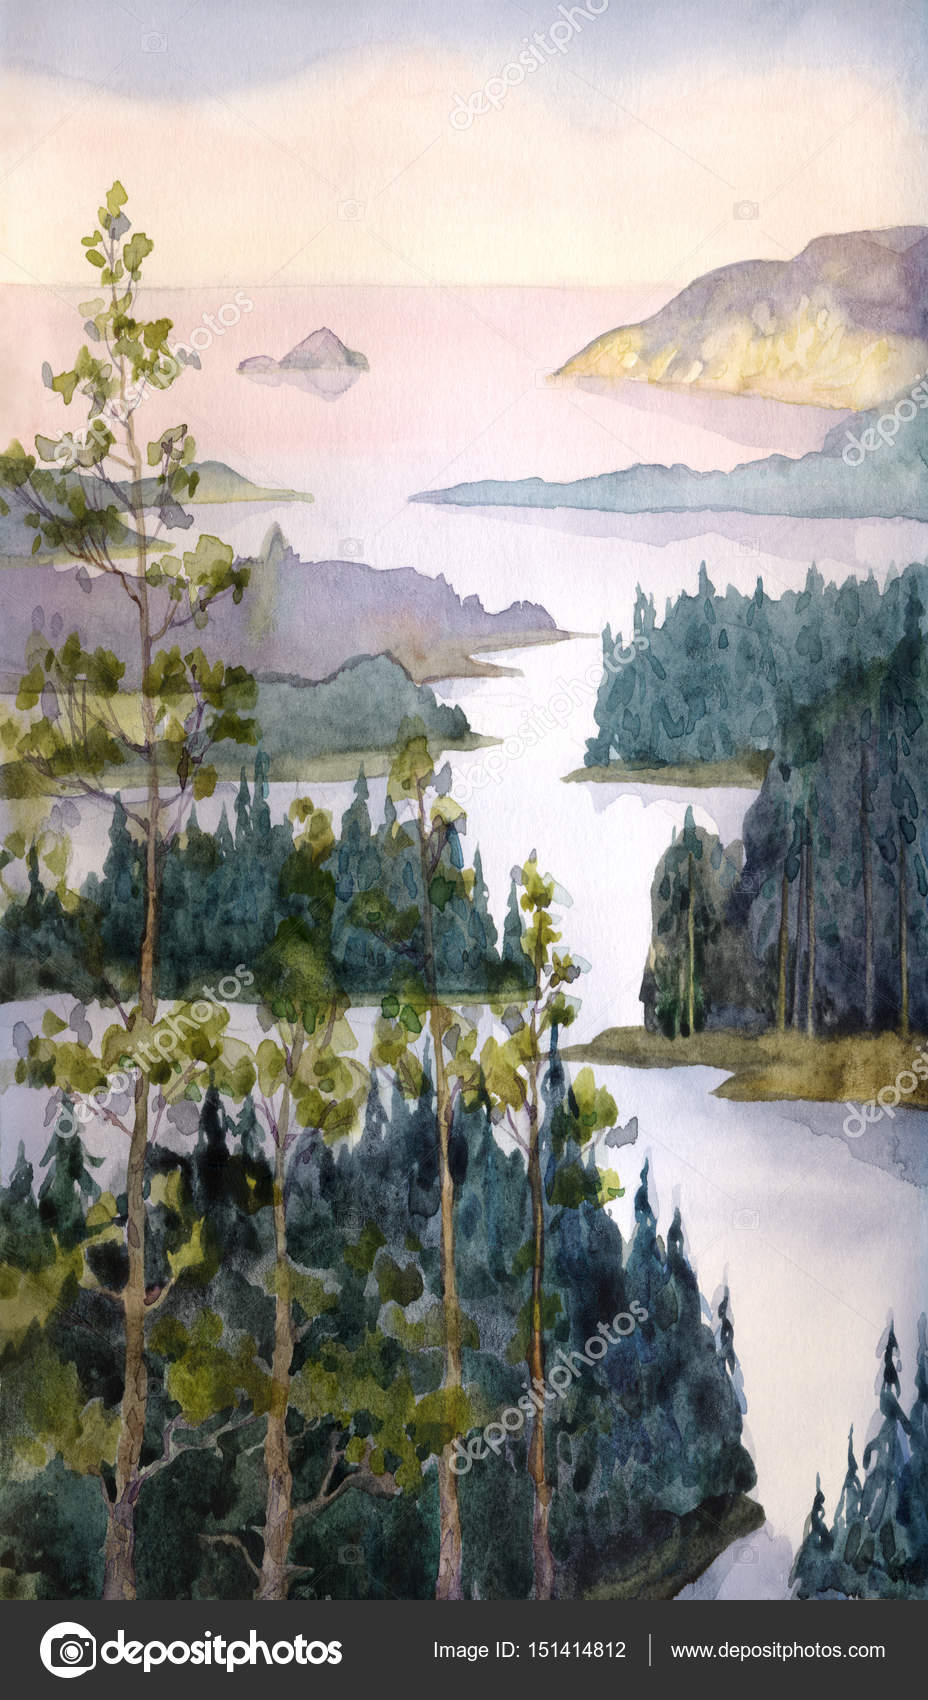 watercolor landscape river of spruce forest stock photo c marinka 151414812 watercolor landscape river of spruce forest stock photo c marinka 151414812